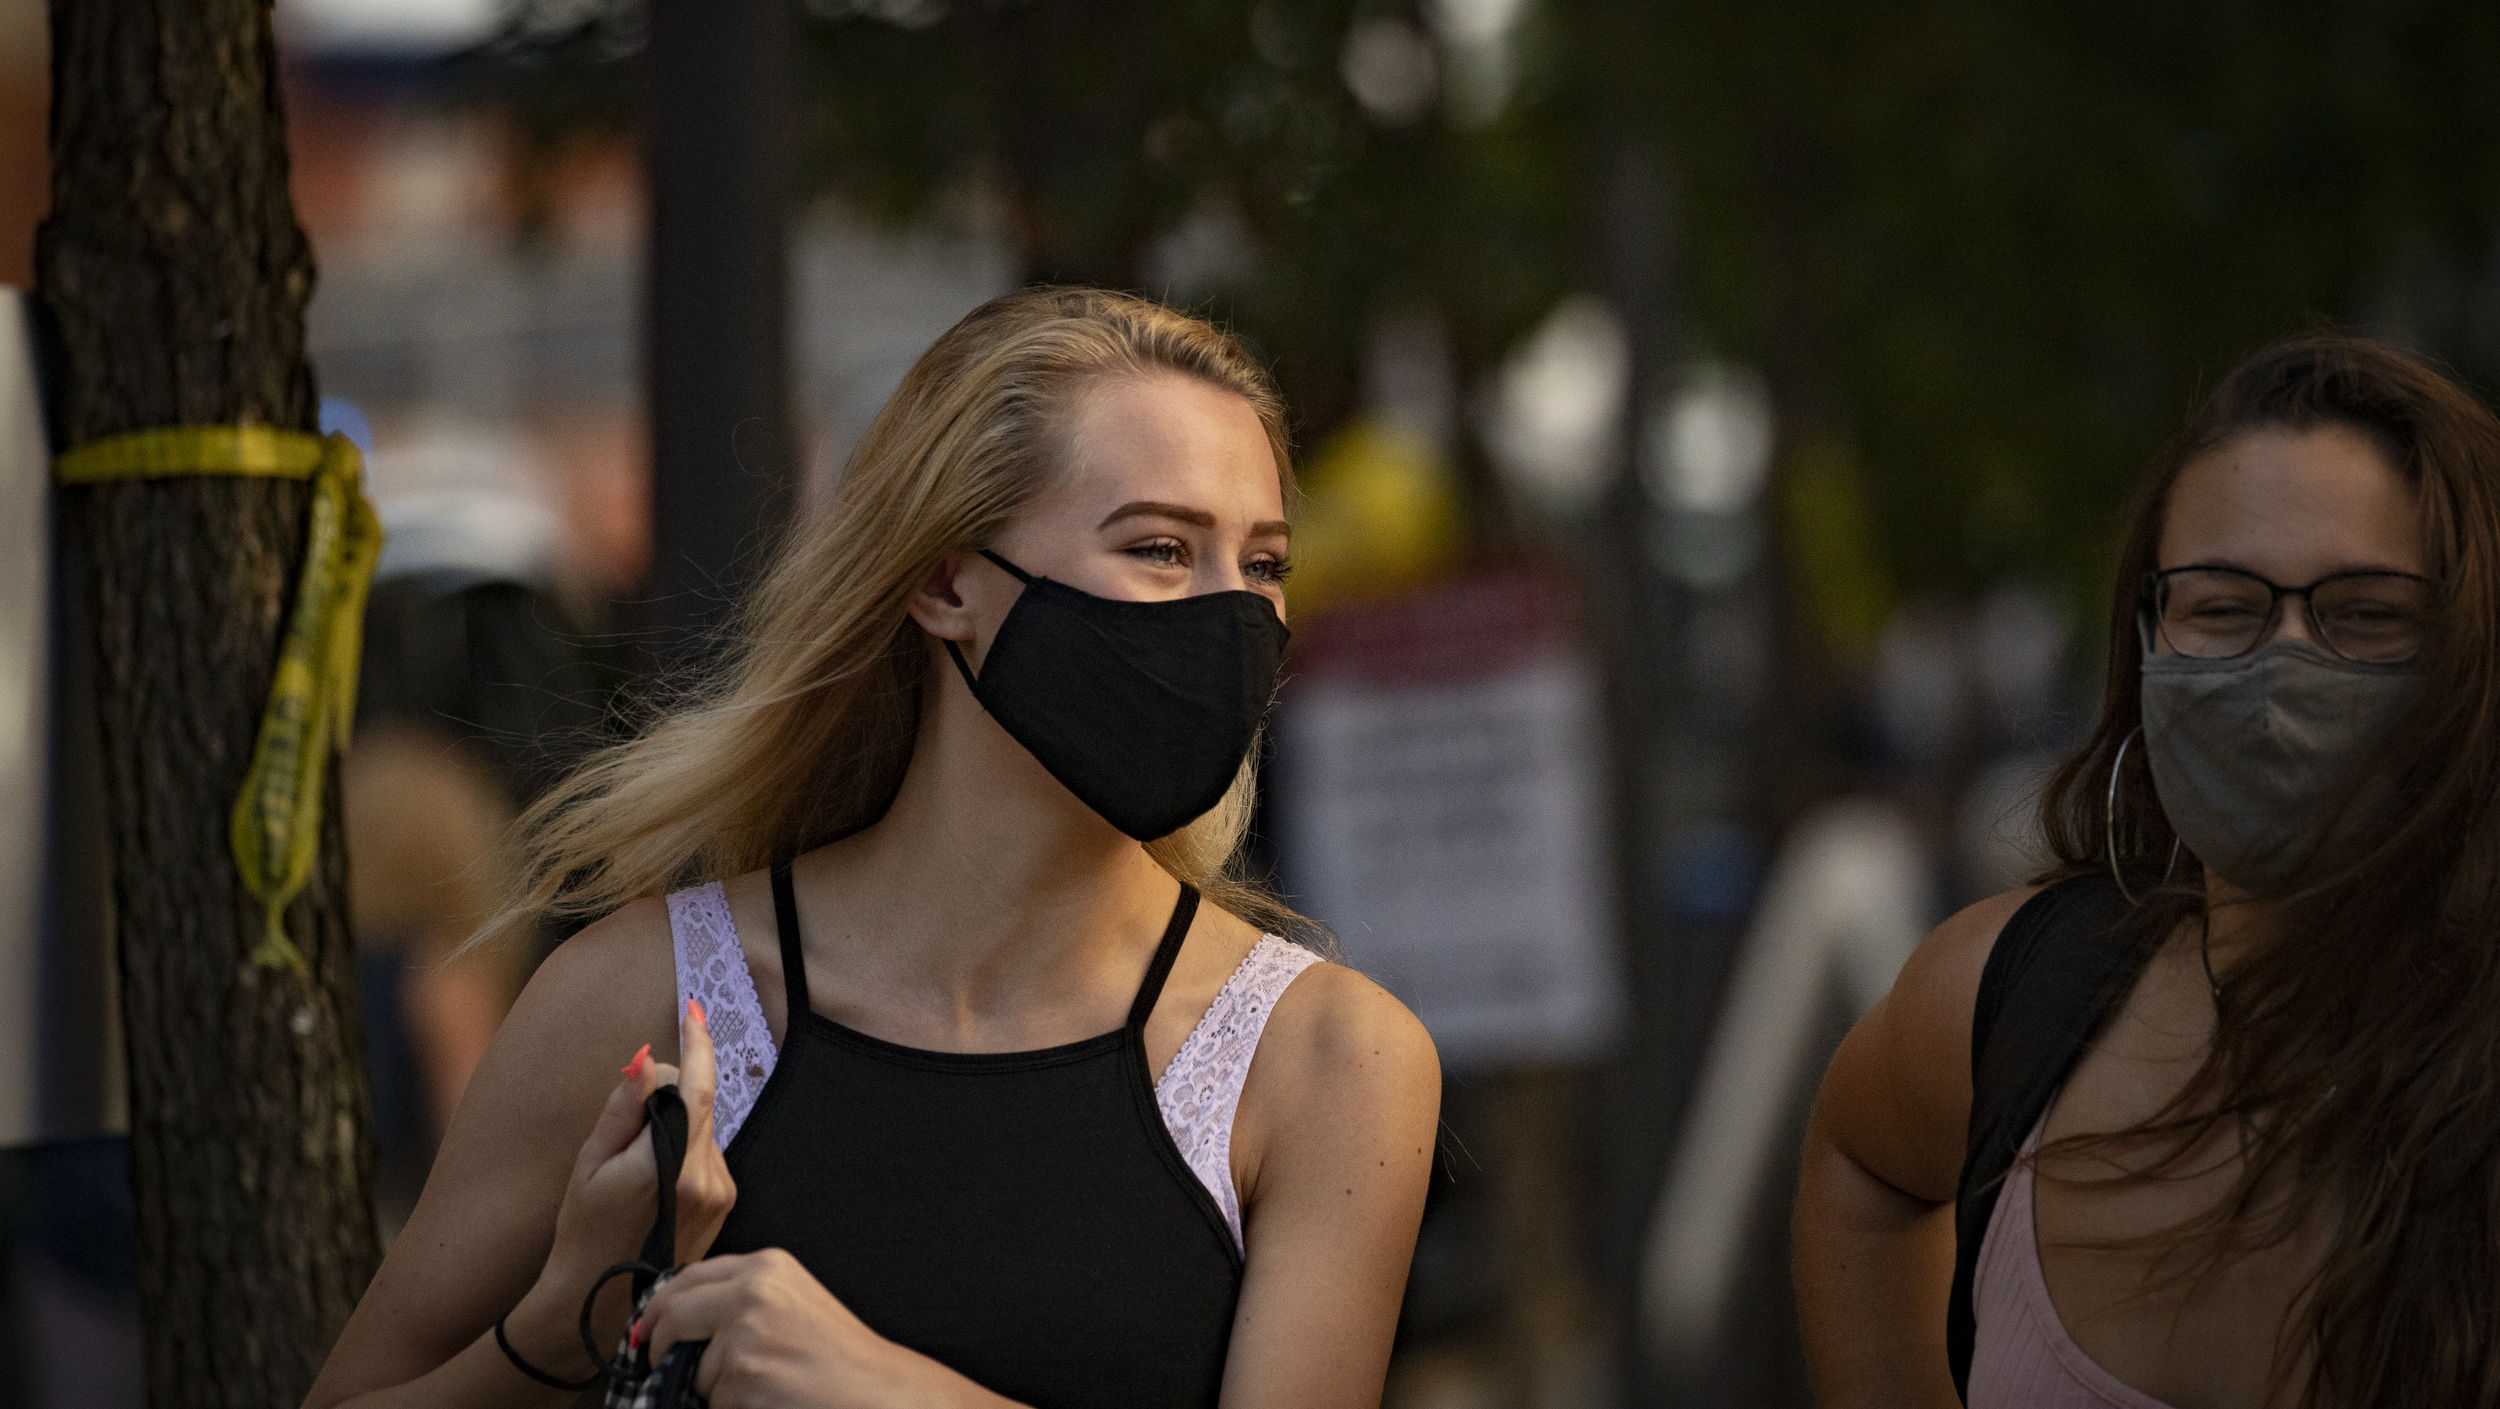 Two students smiling and wearing masks on campus